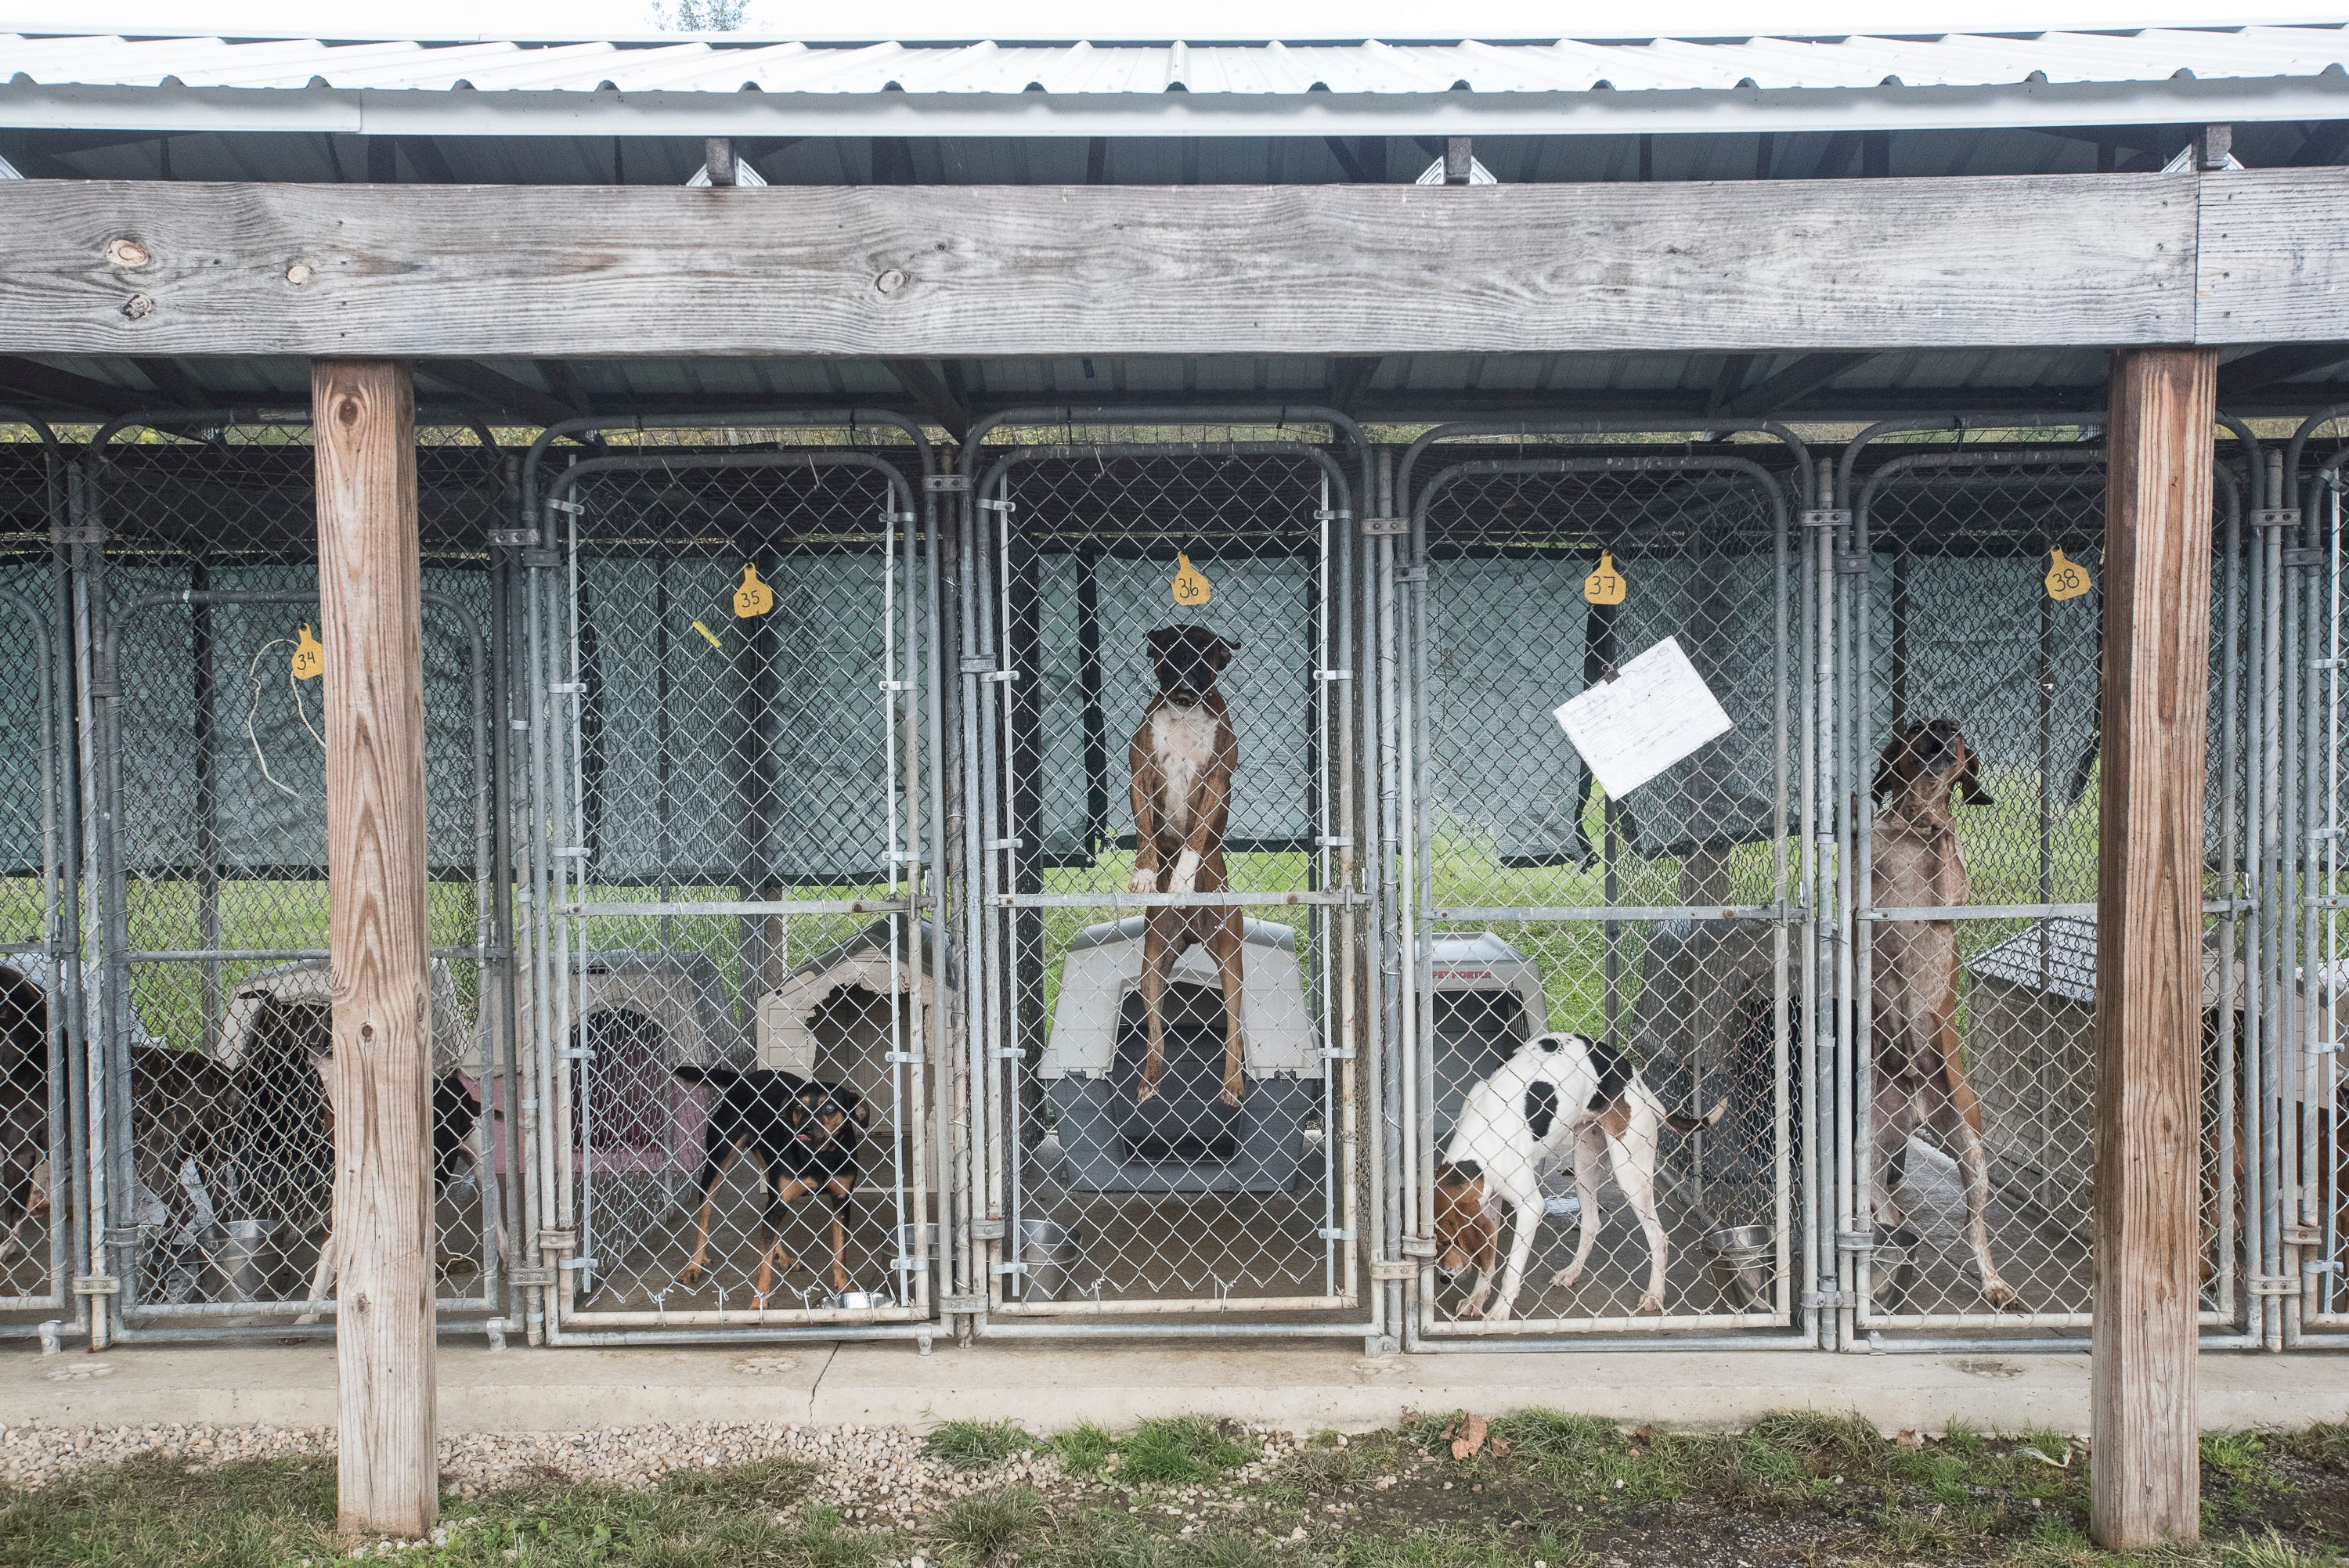 Image of: Puppy Ross County Humane Society At Critical Capacity Lowering Adoption Fee